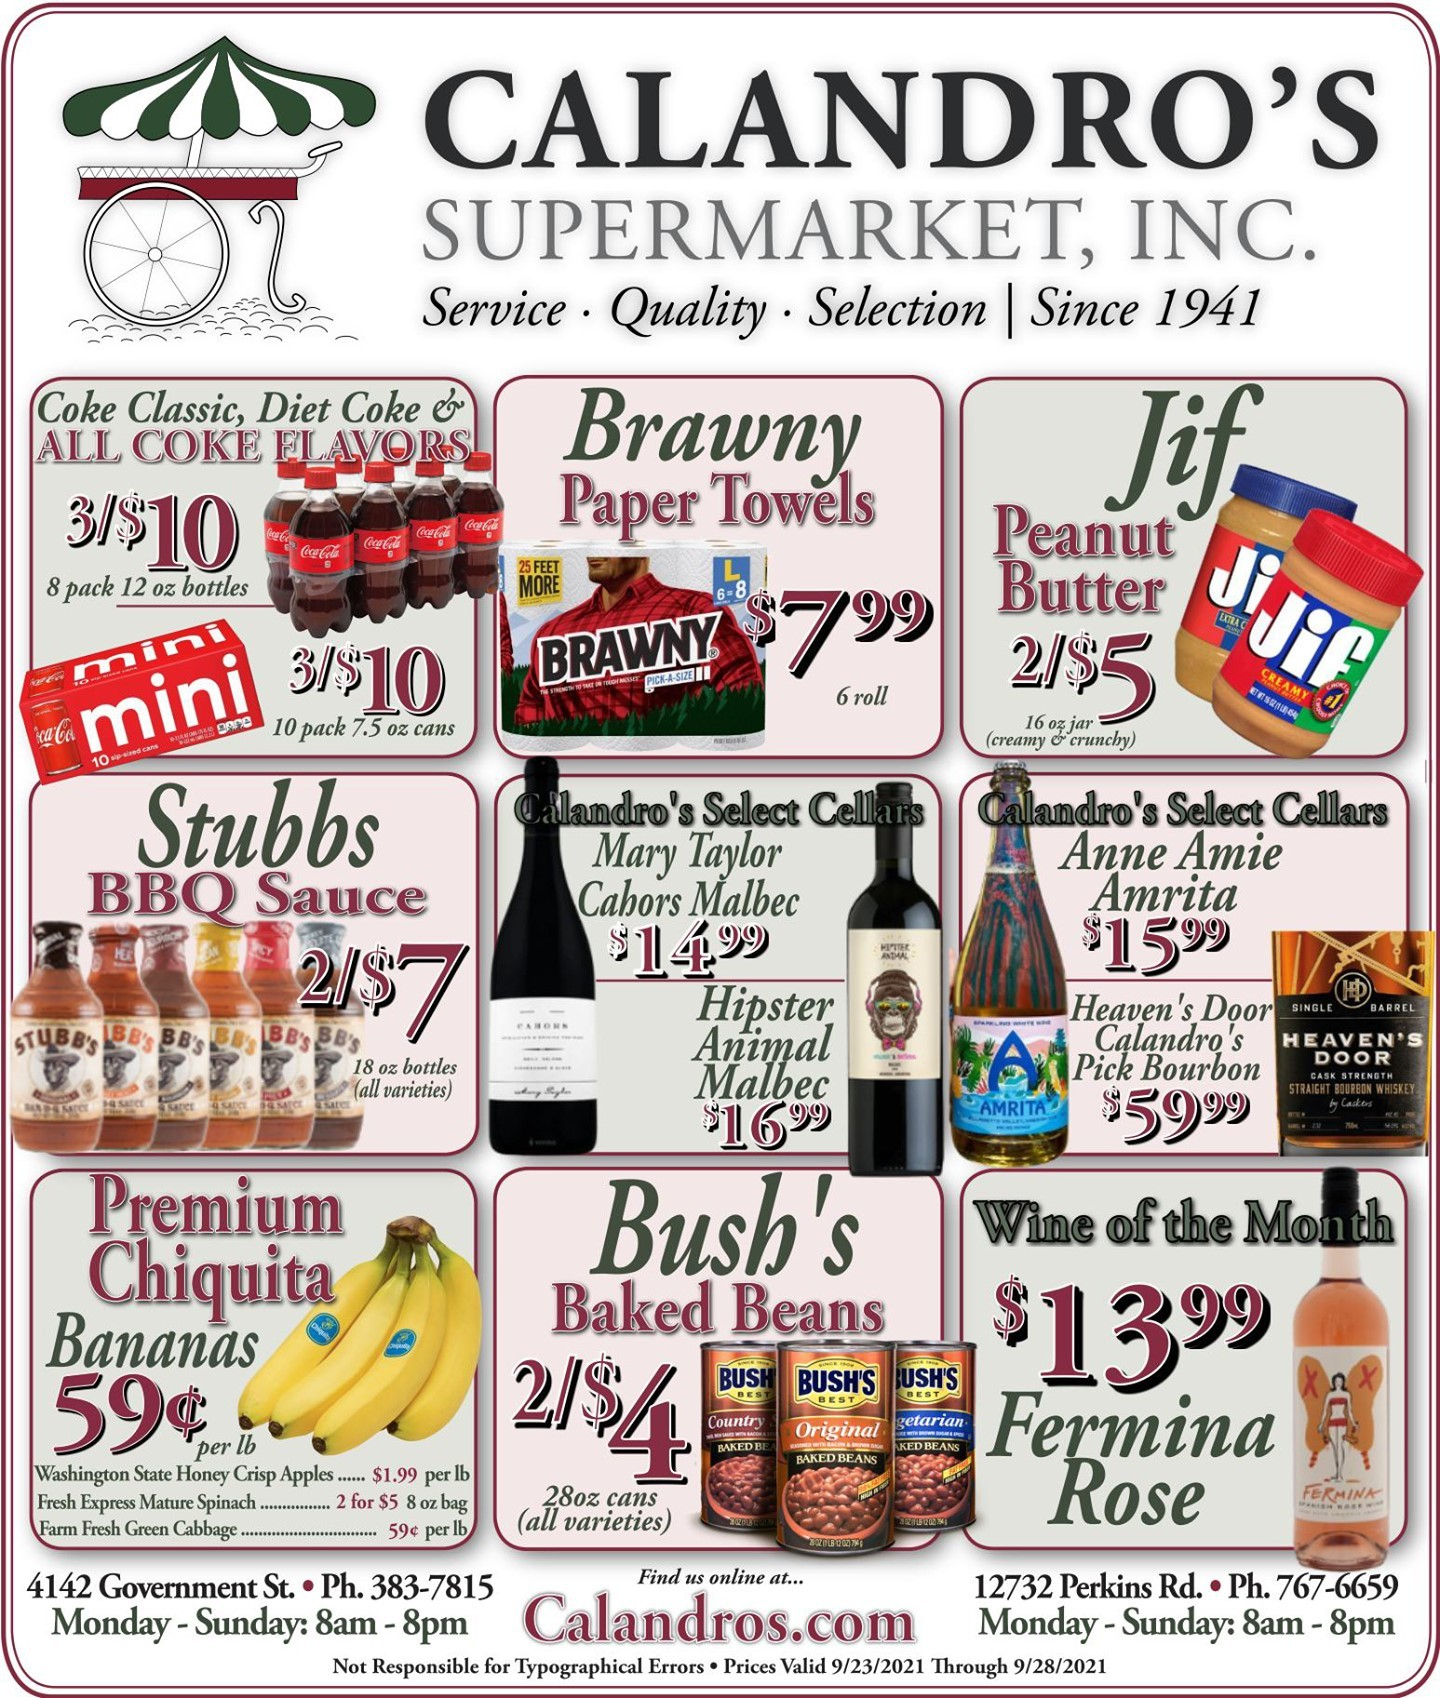 Calandro's Wonderful Sales and Deals for This Week! (9/23/2021 – 9/28/2021) http://dlvr.it/S860K6…